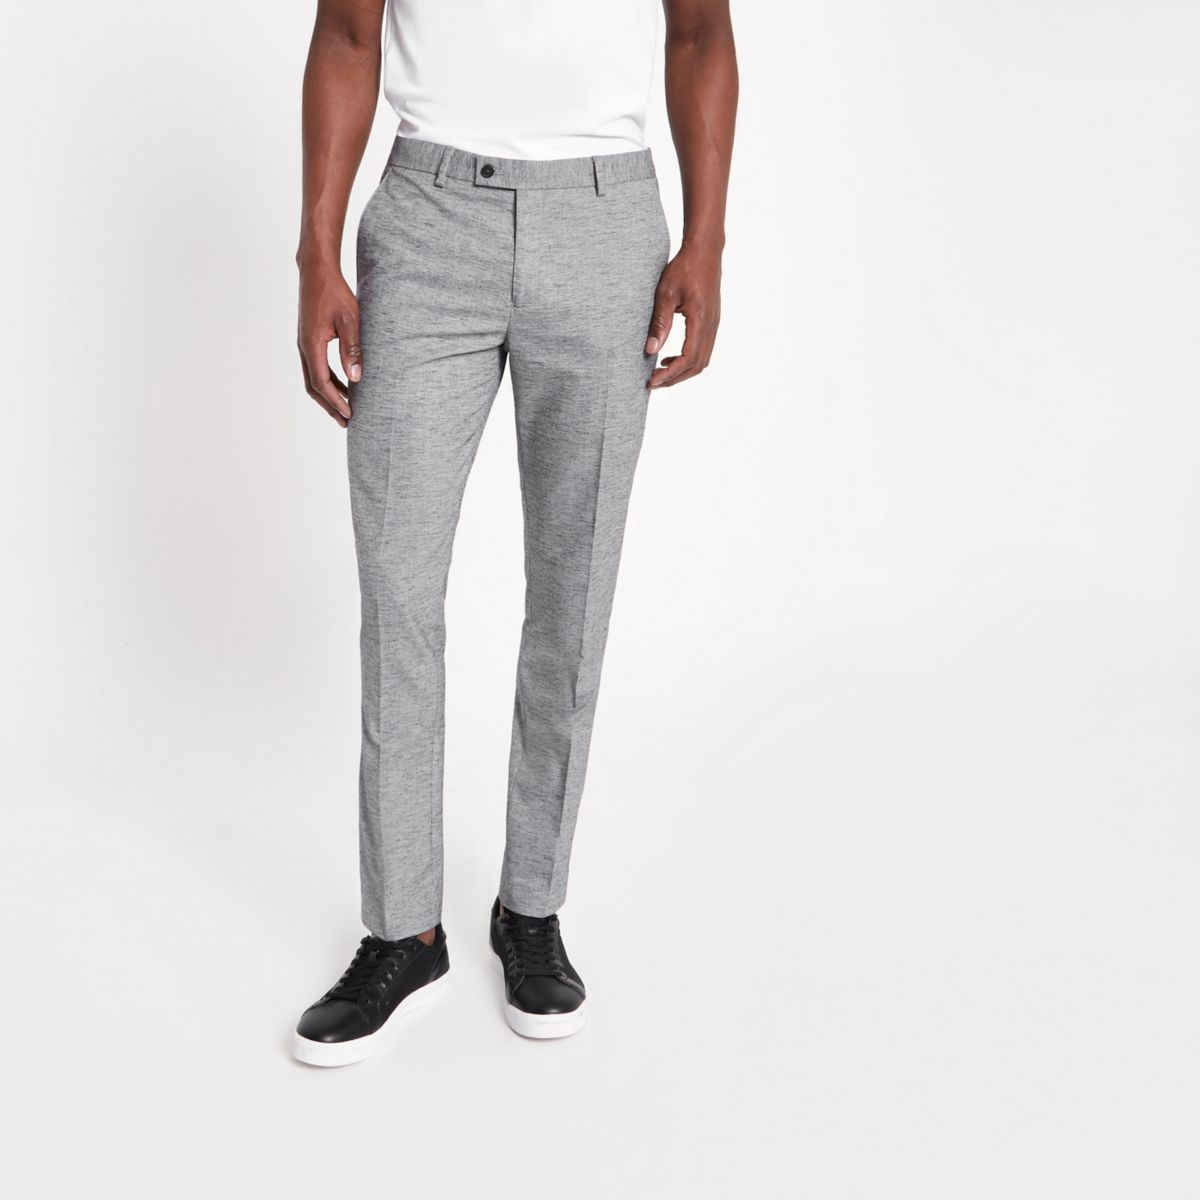 Light grey skinny fit suit pants